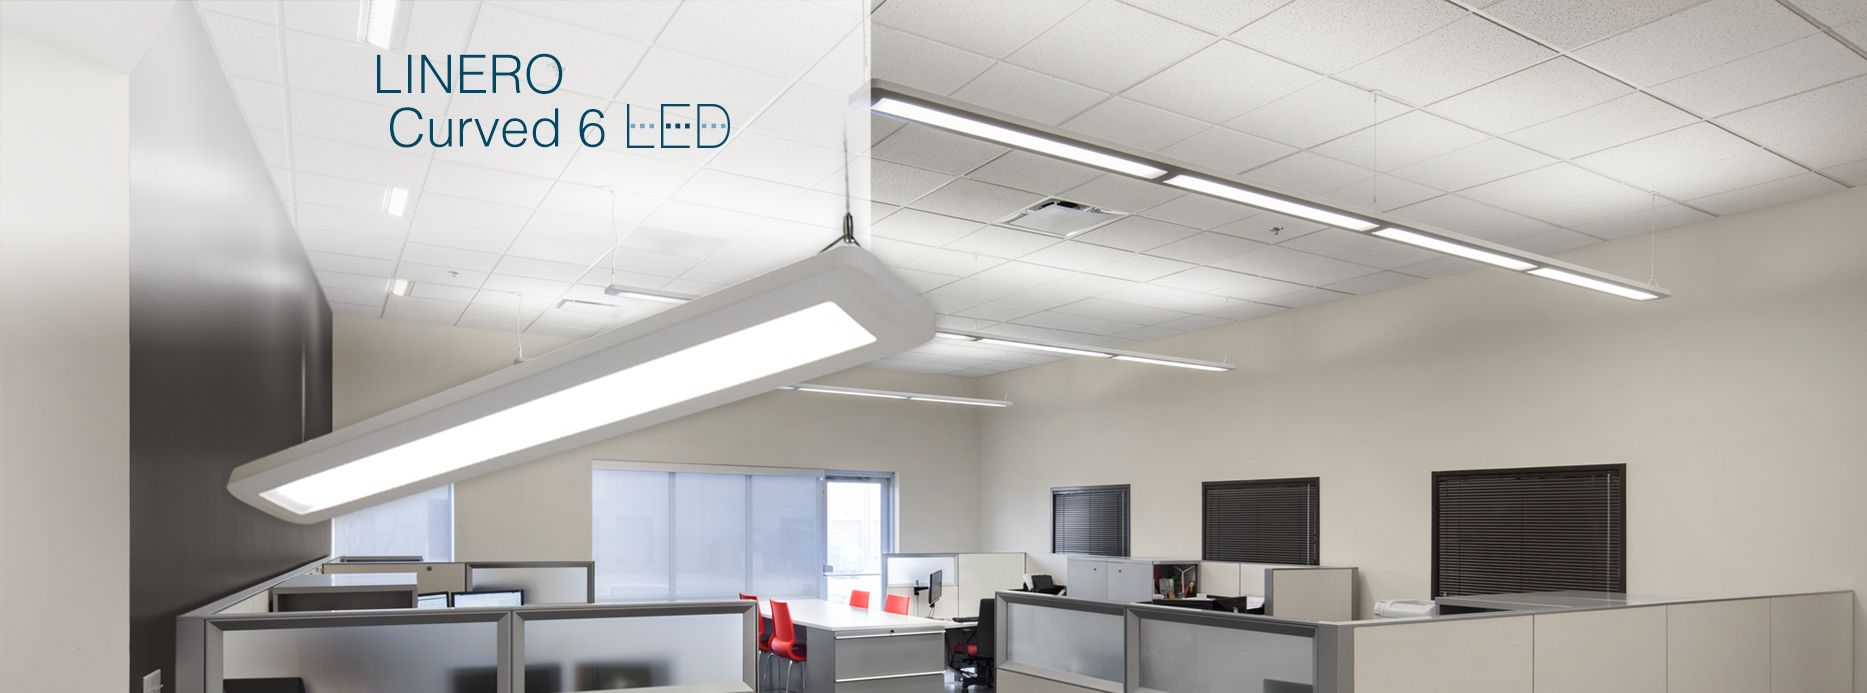 Linero 6 Led Curved By Pinnacle Architectural Lighting